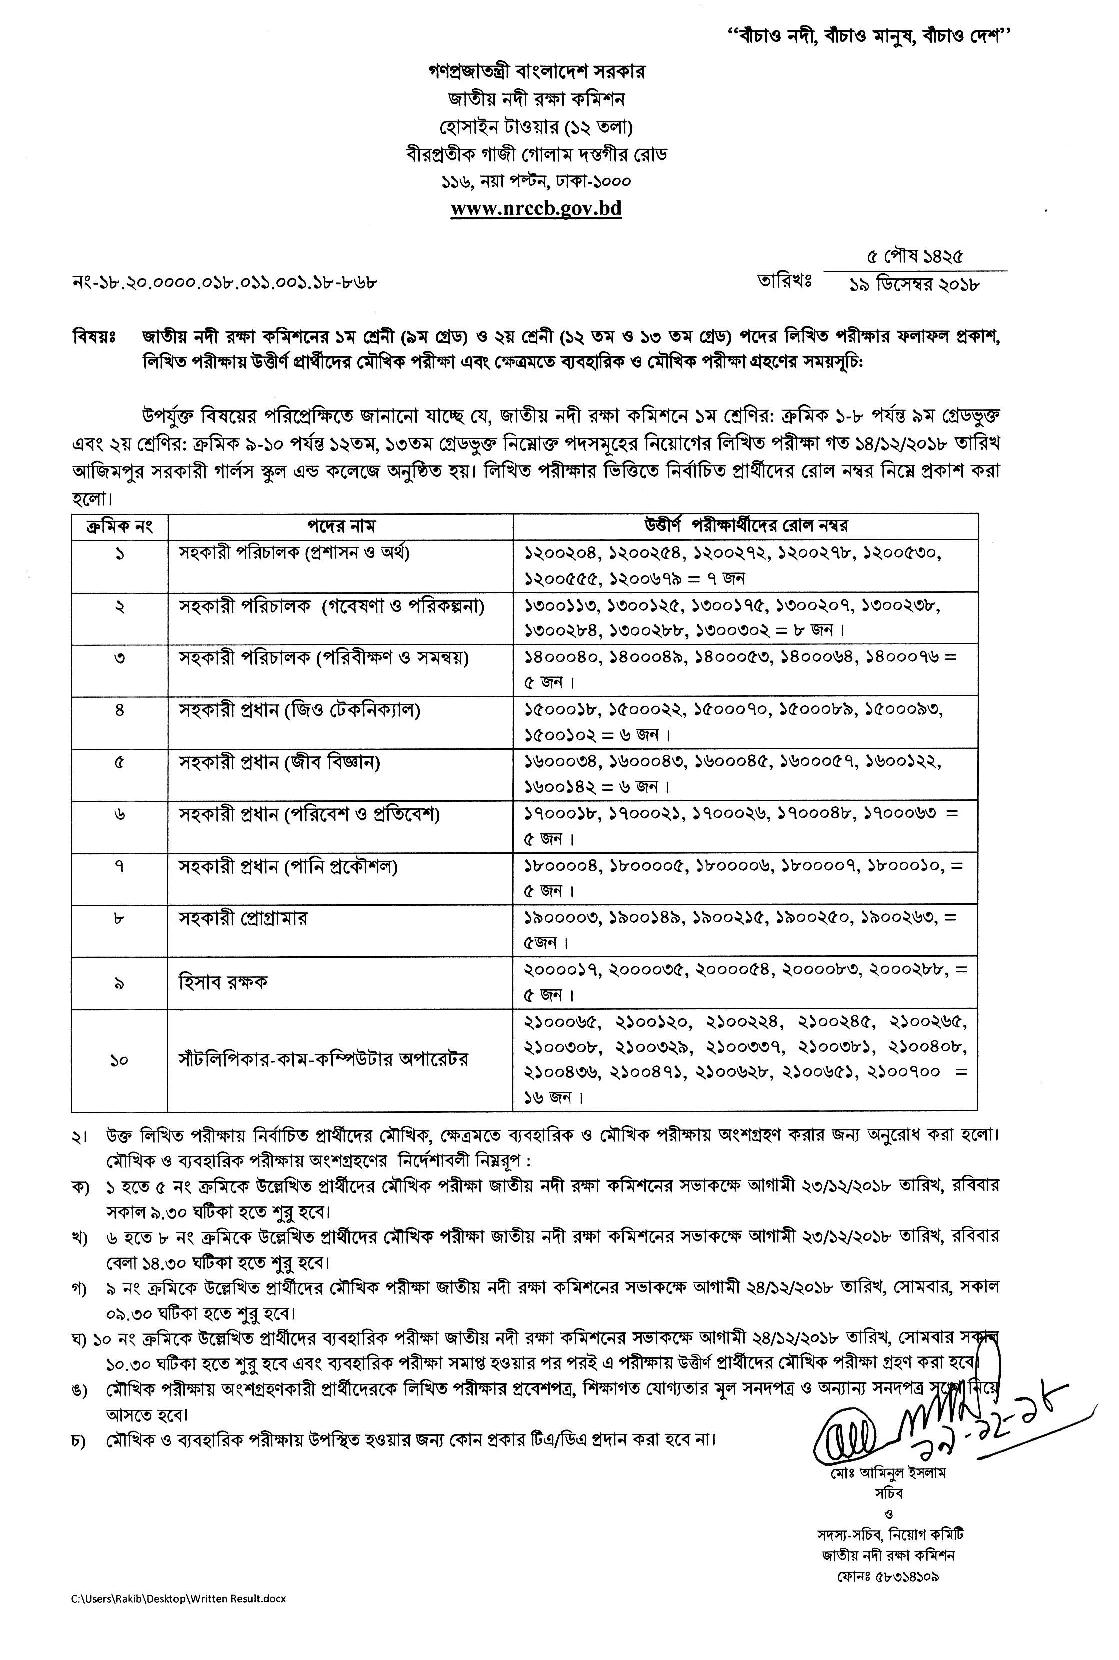 National River Conservation Commission Admit Exam Date Result 2019 1